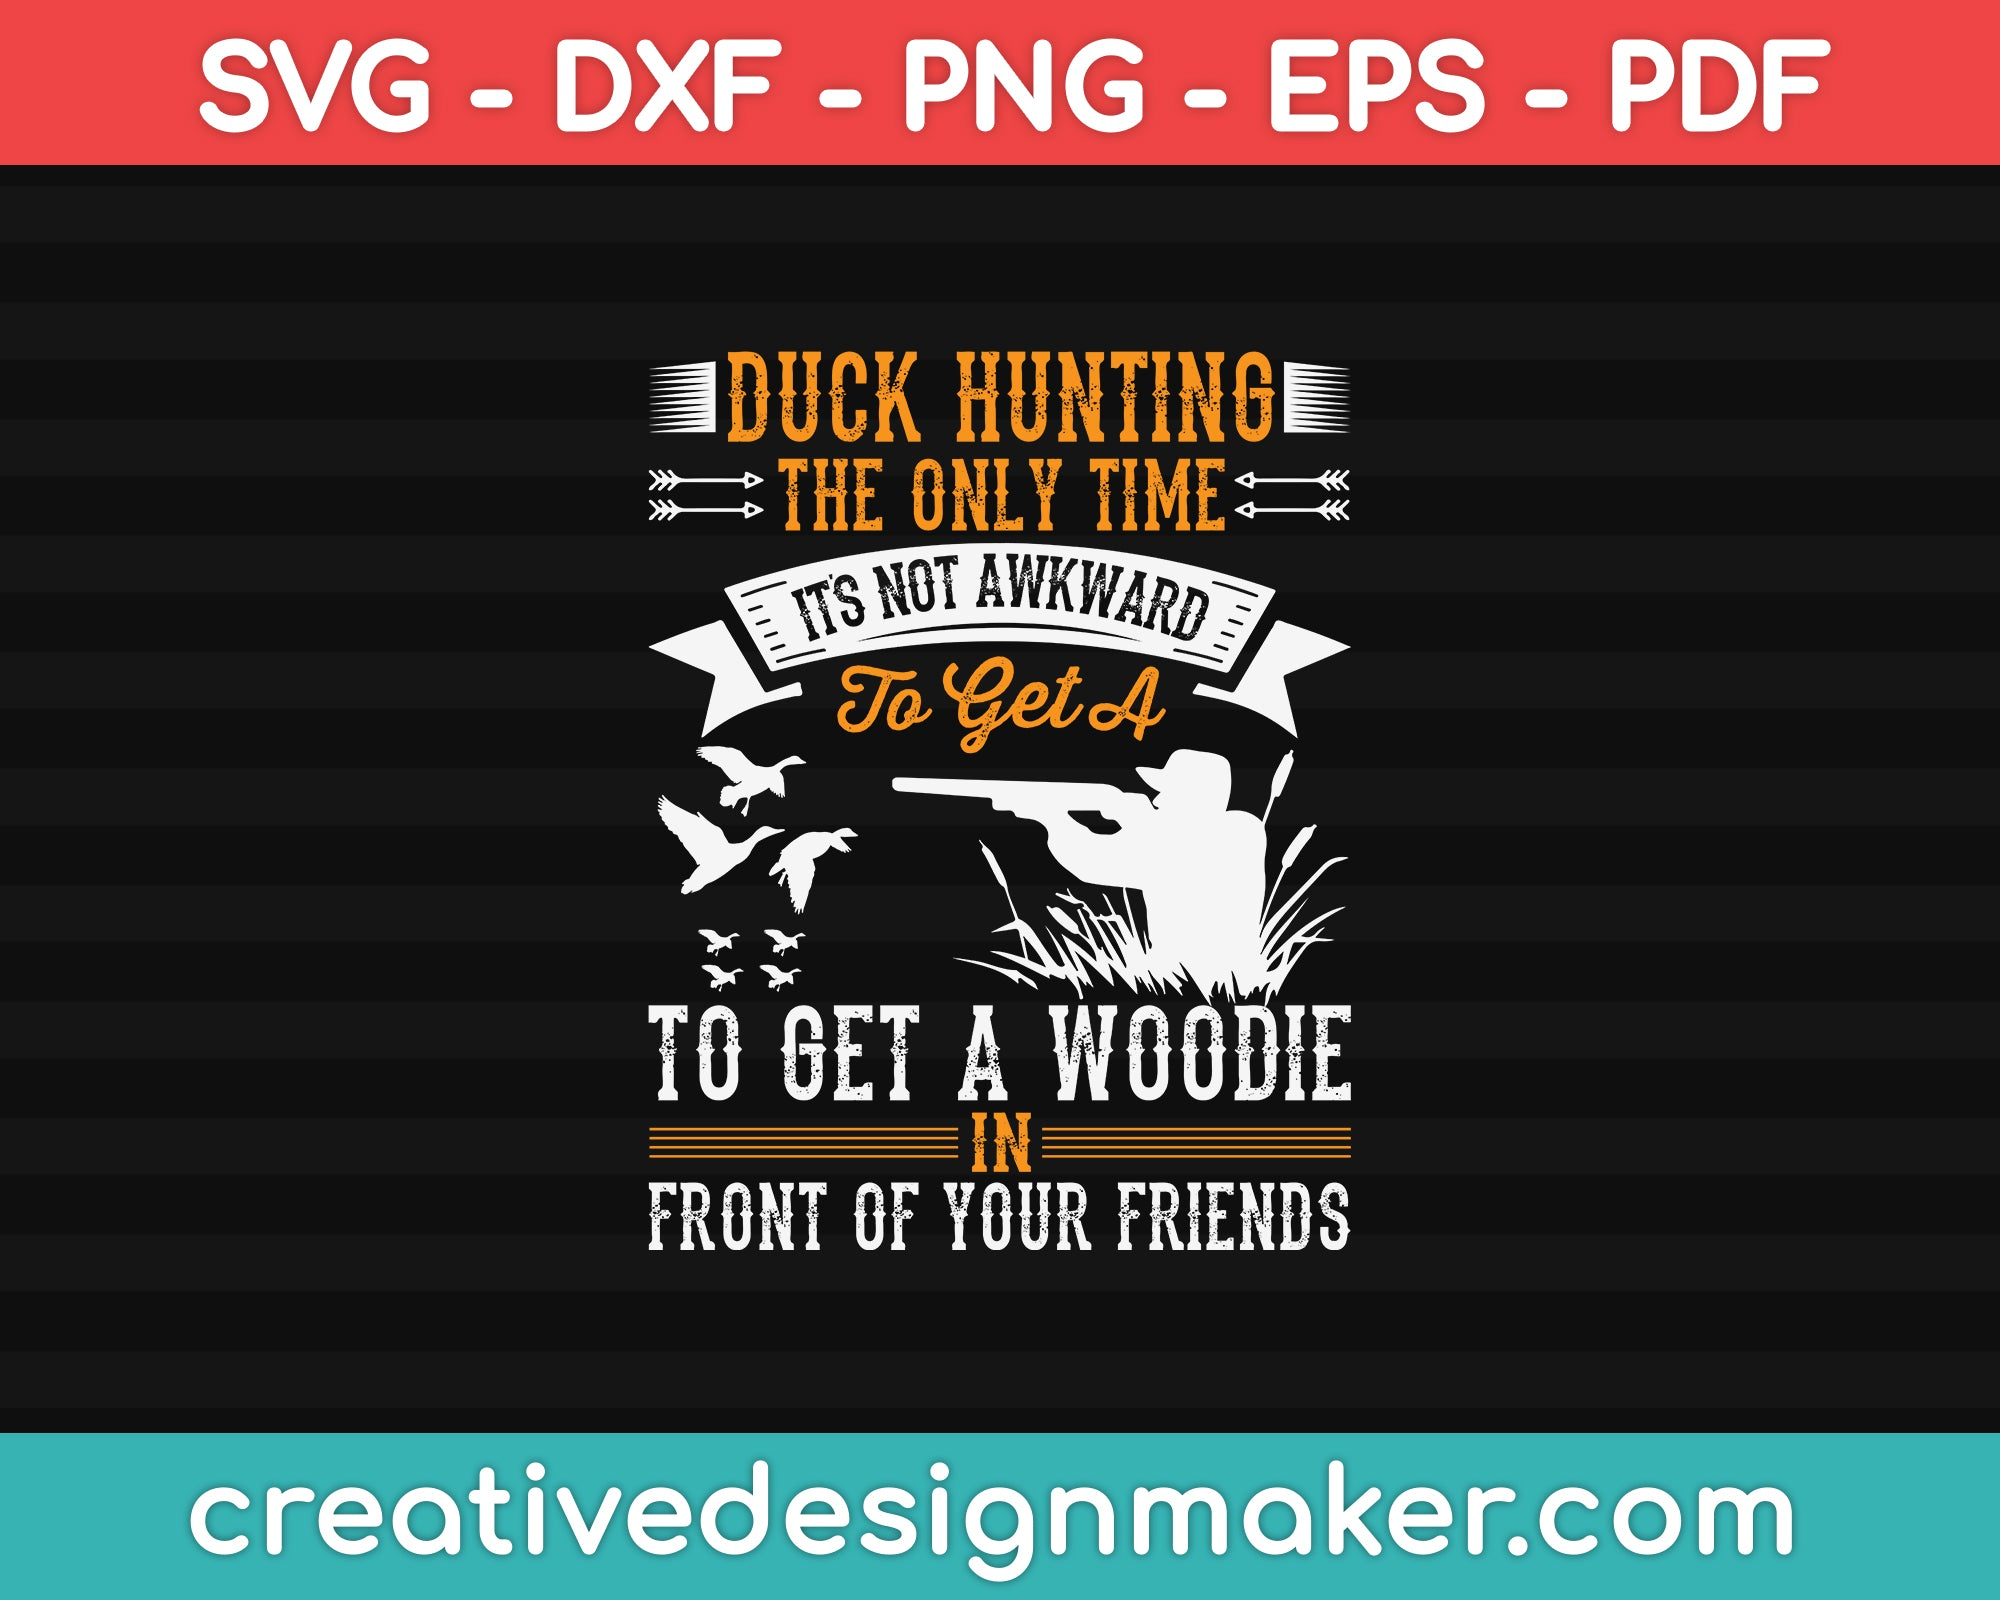 Duck Hunting Desgin SVG PNG Cutting Printable Files